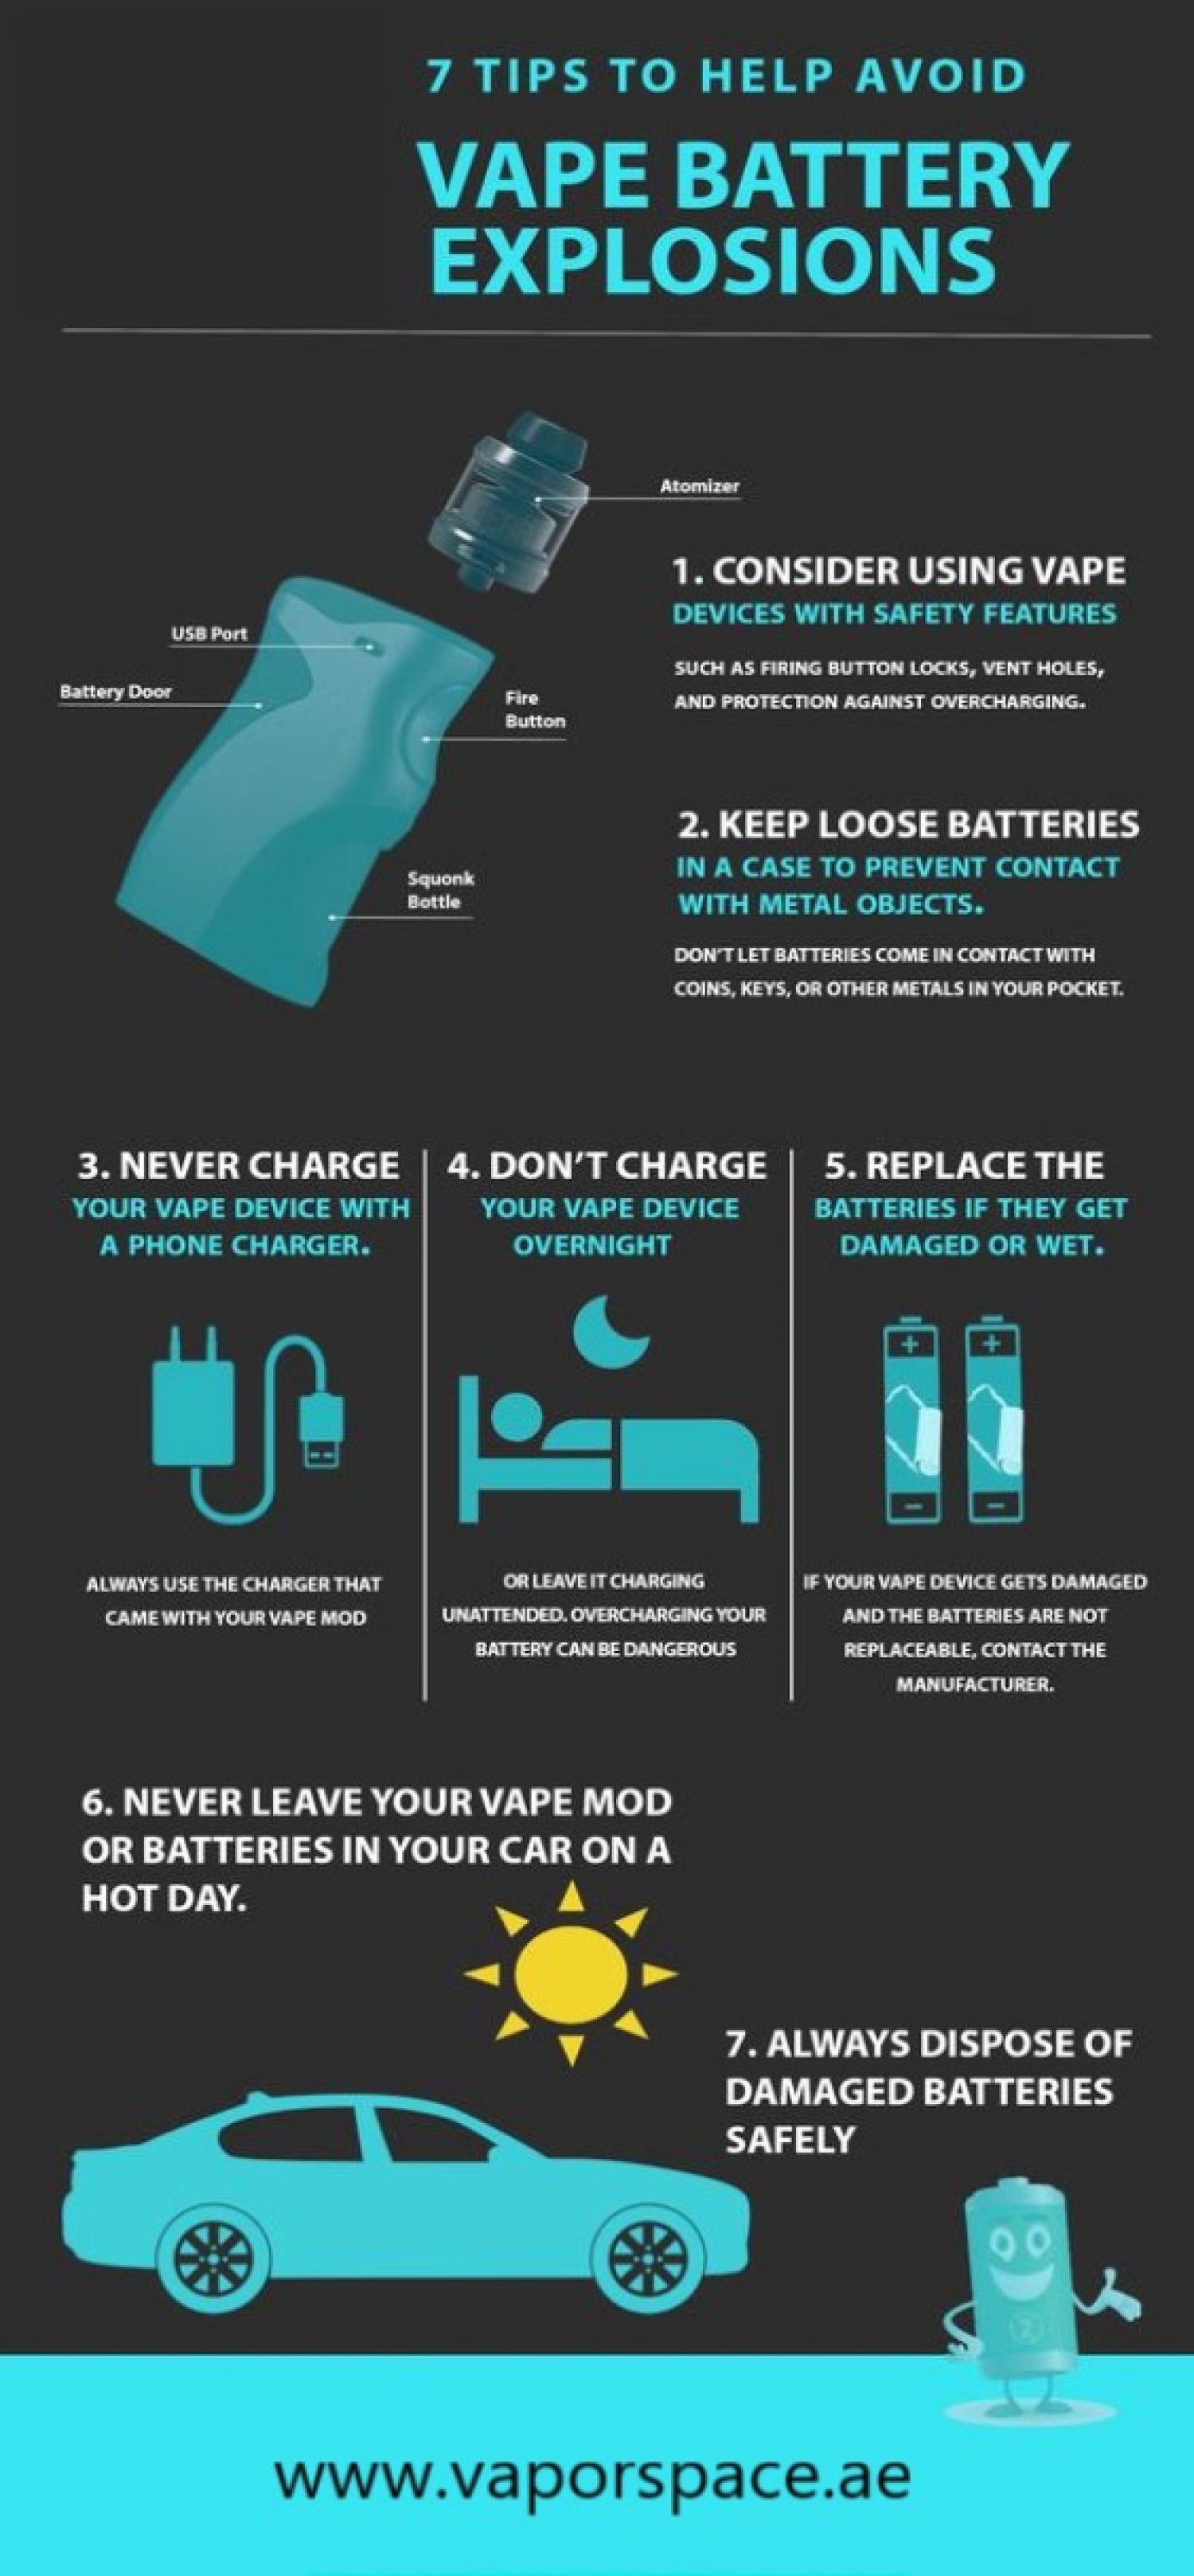 7 Tips to Help Avoid Vape Battery Explosions Infographic